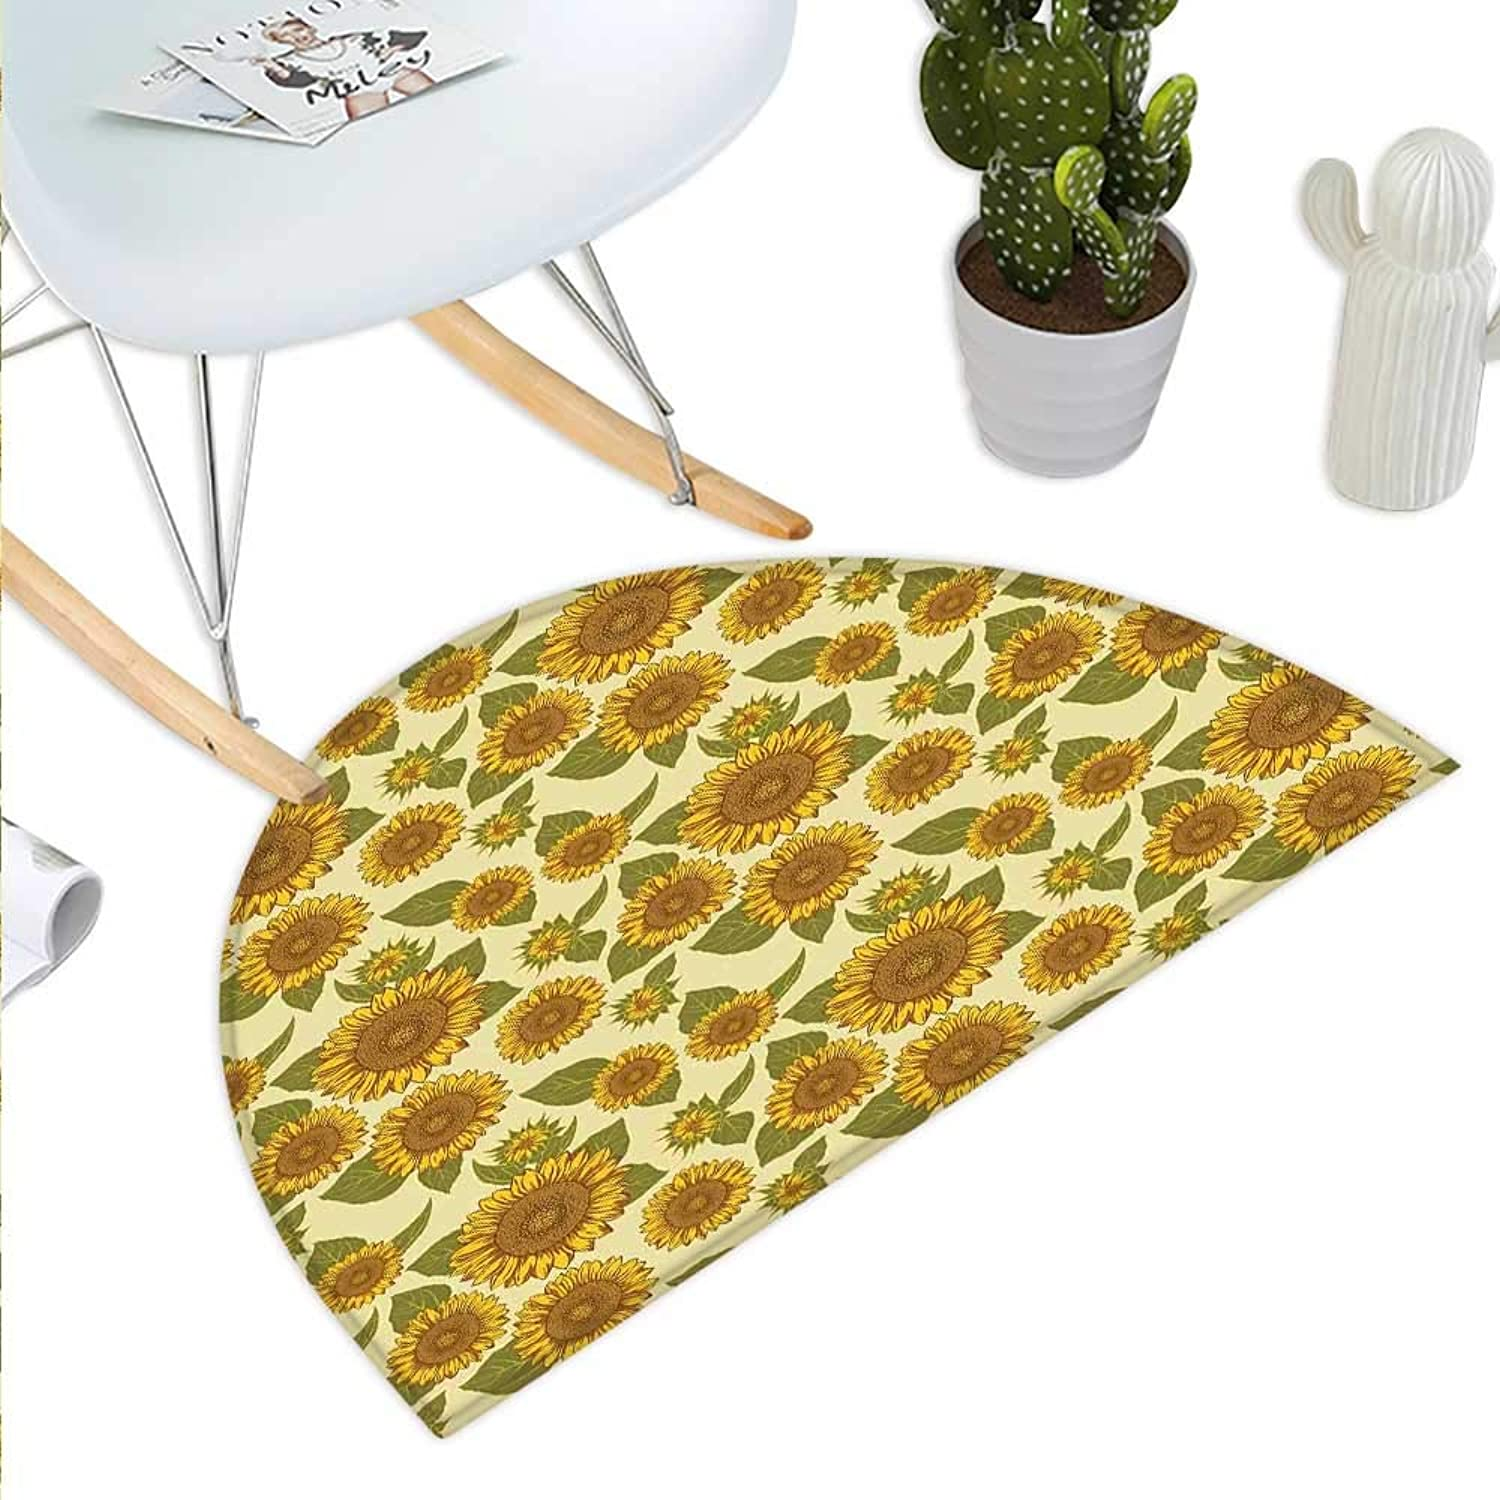 Sunflower Semicircle Doormat Funky Style Sunflower in Pastel colors Old Fashioned Nostalgic Vintage Print Halfmoon doormats H 23.6  xD 35.4  Green Yellow